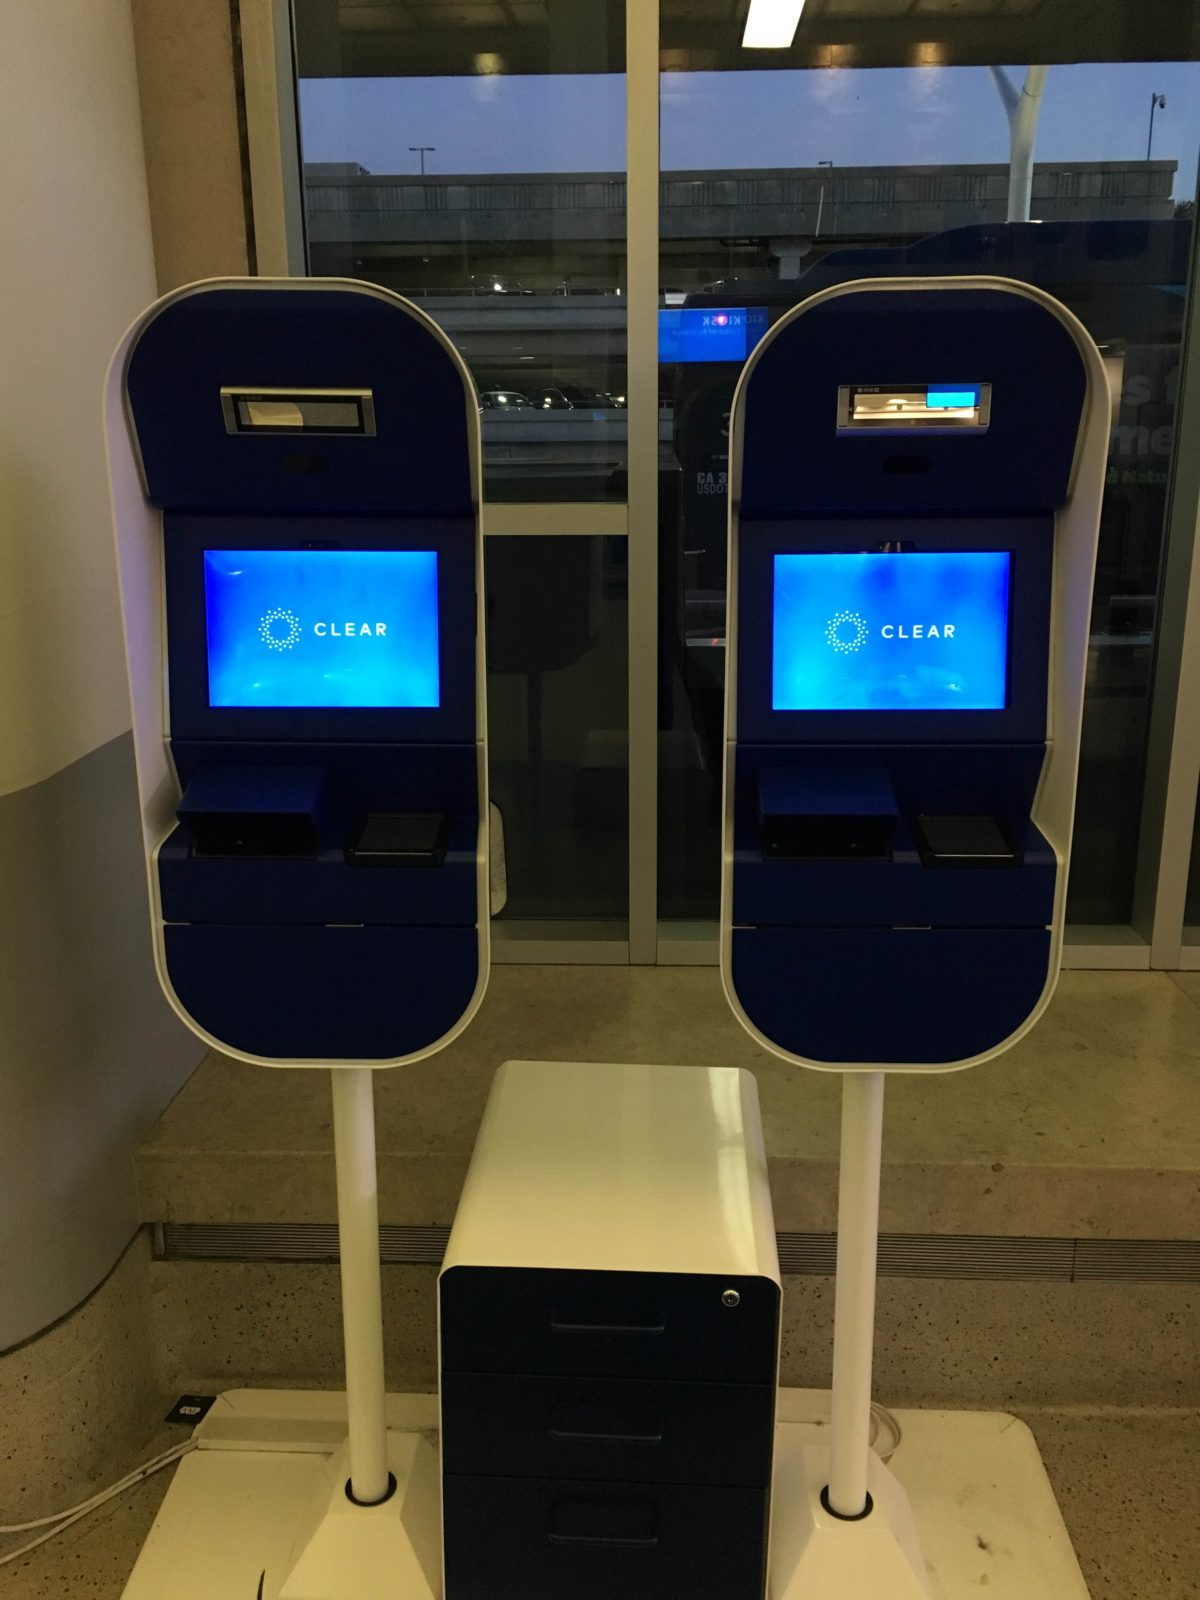 CLEAR – Reduce Airport Security Wait Time